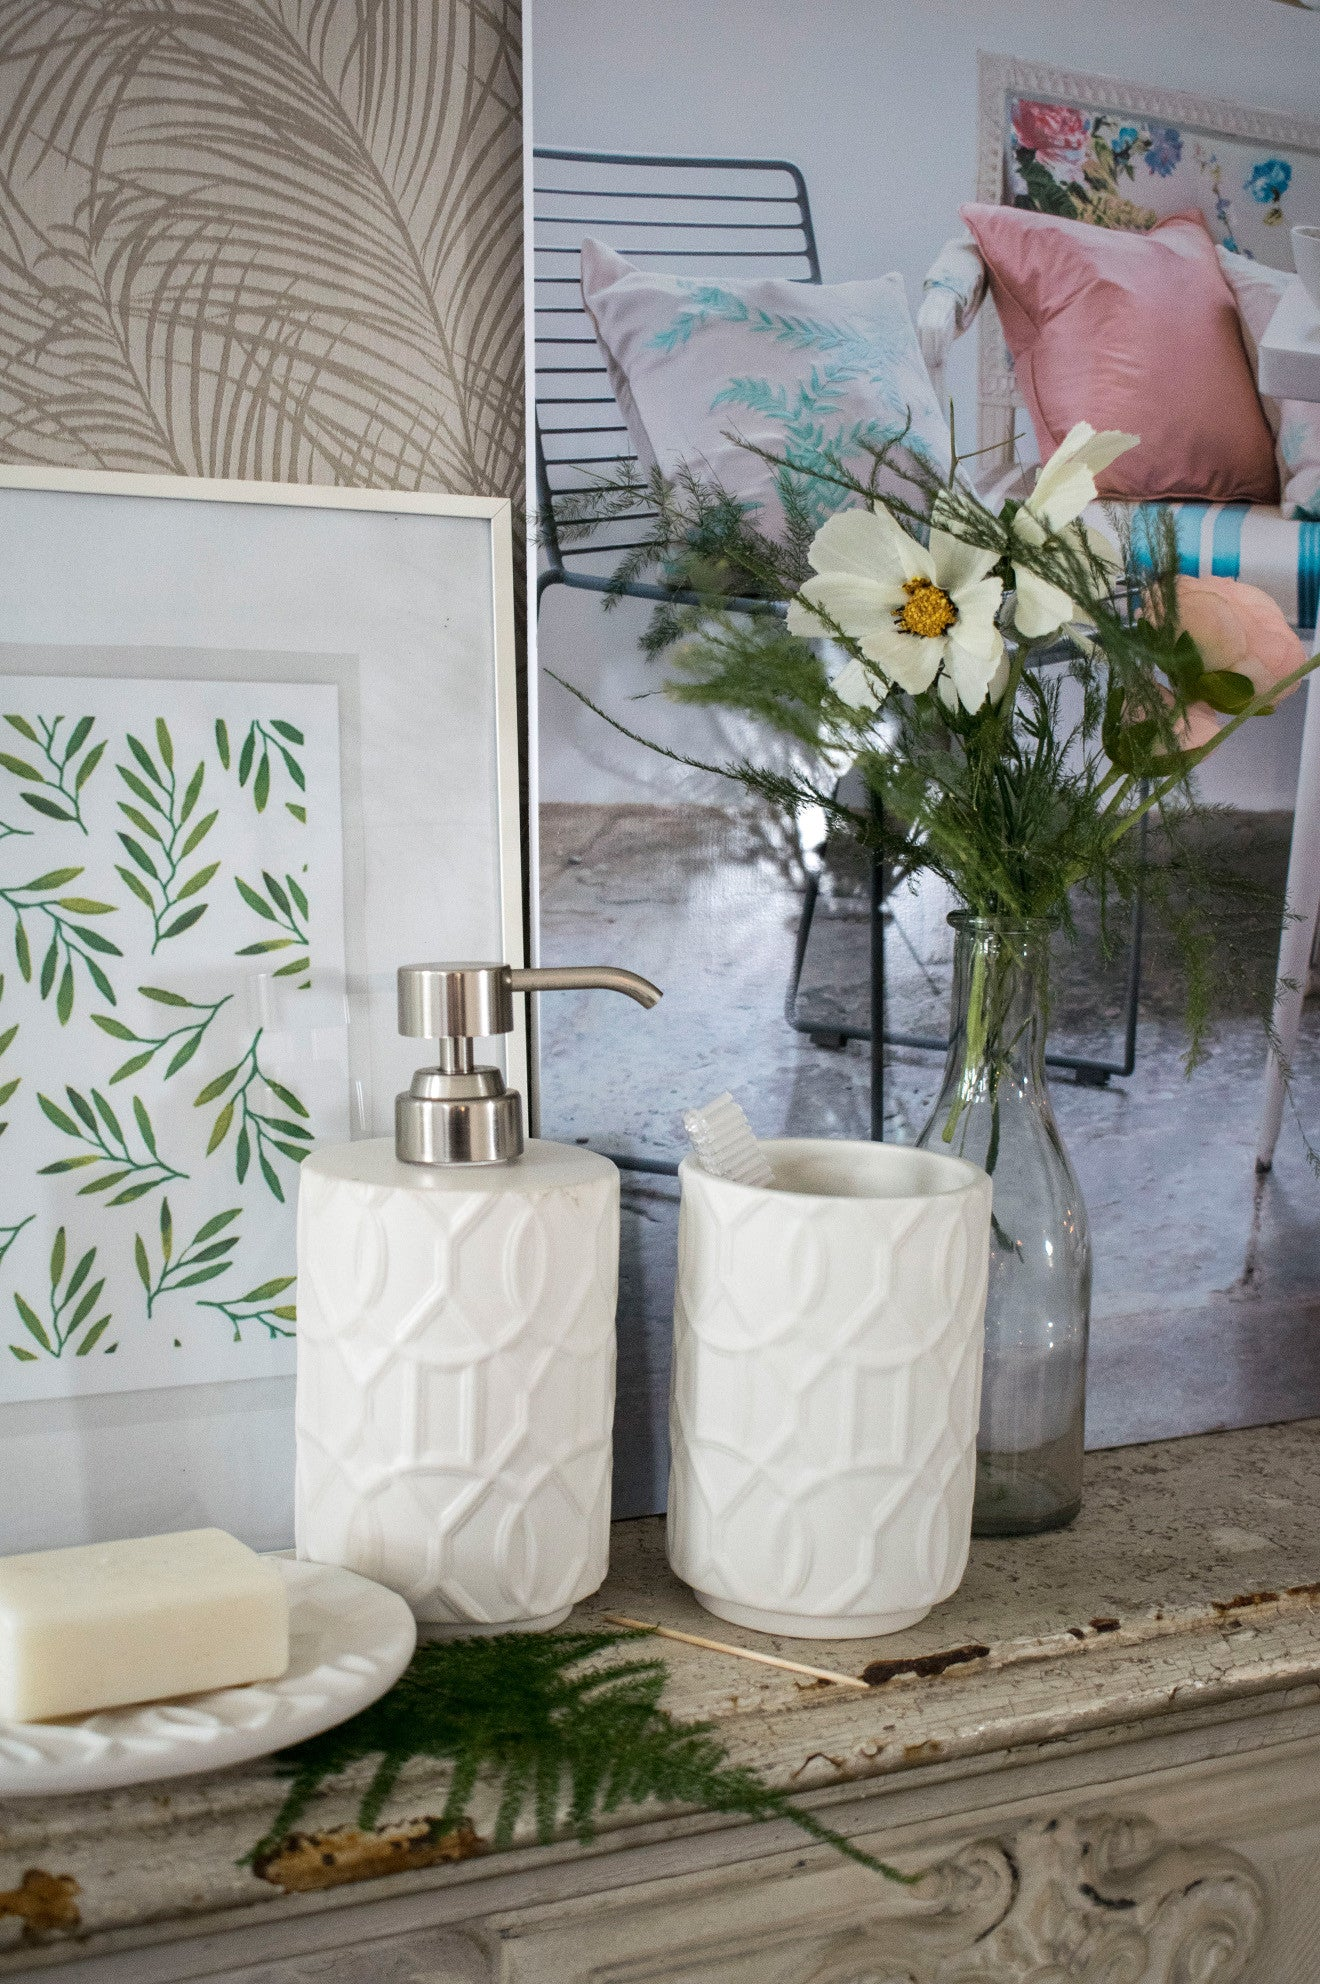 White decorative ceramic soap dispenser and holder from Amara own label